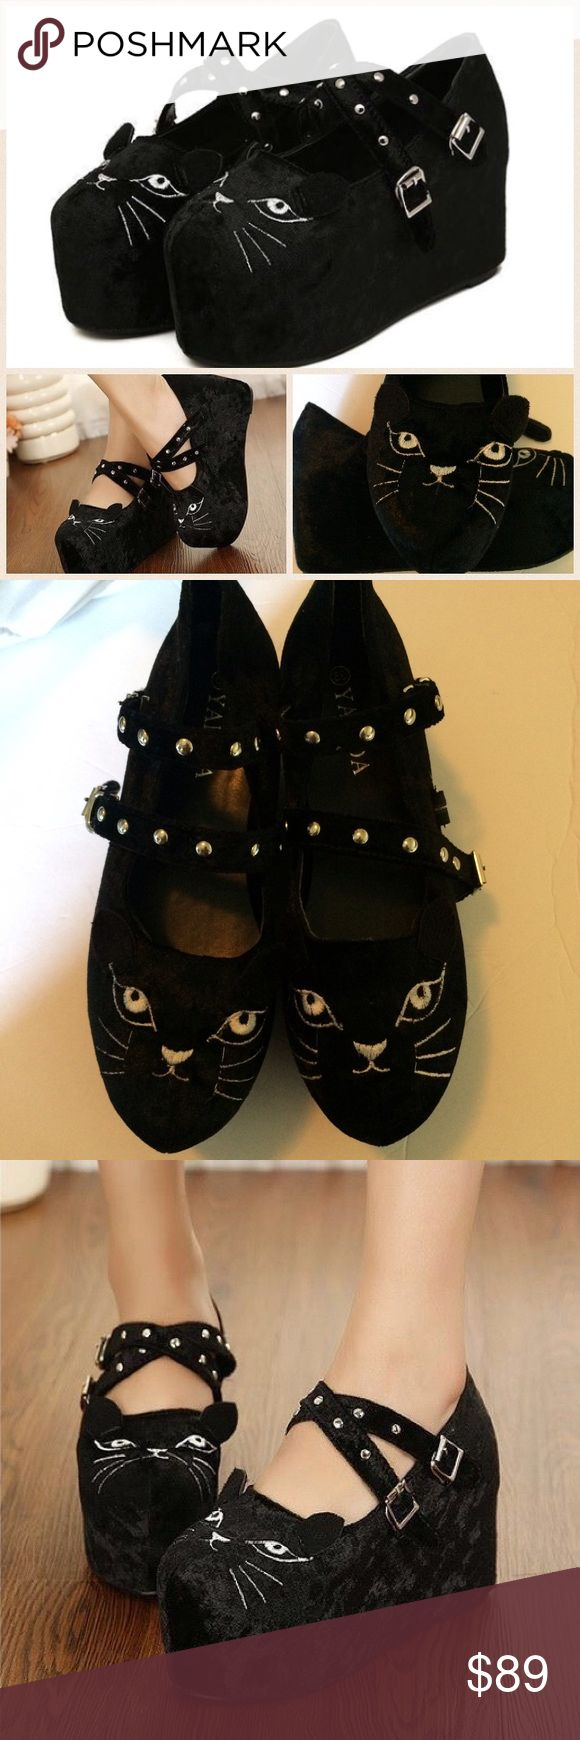 Velvet platform studded cat shoes !!! 8 The most amazing and ridiculous cat lady shoes you are likely to get your hands on!! Approx 9.5 long (size 8 but unmarked) velvet platform shoe . About 3.5 platform. Adorable cat design with moveable ears!!! Studded straps with hook closure . Puuurrrrrfect for your inner cat lady ( sorry, couldn't help it ) 😹 new never worn without box. yalida Shoes Platforms